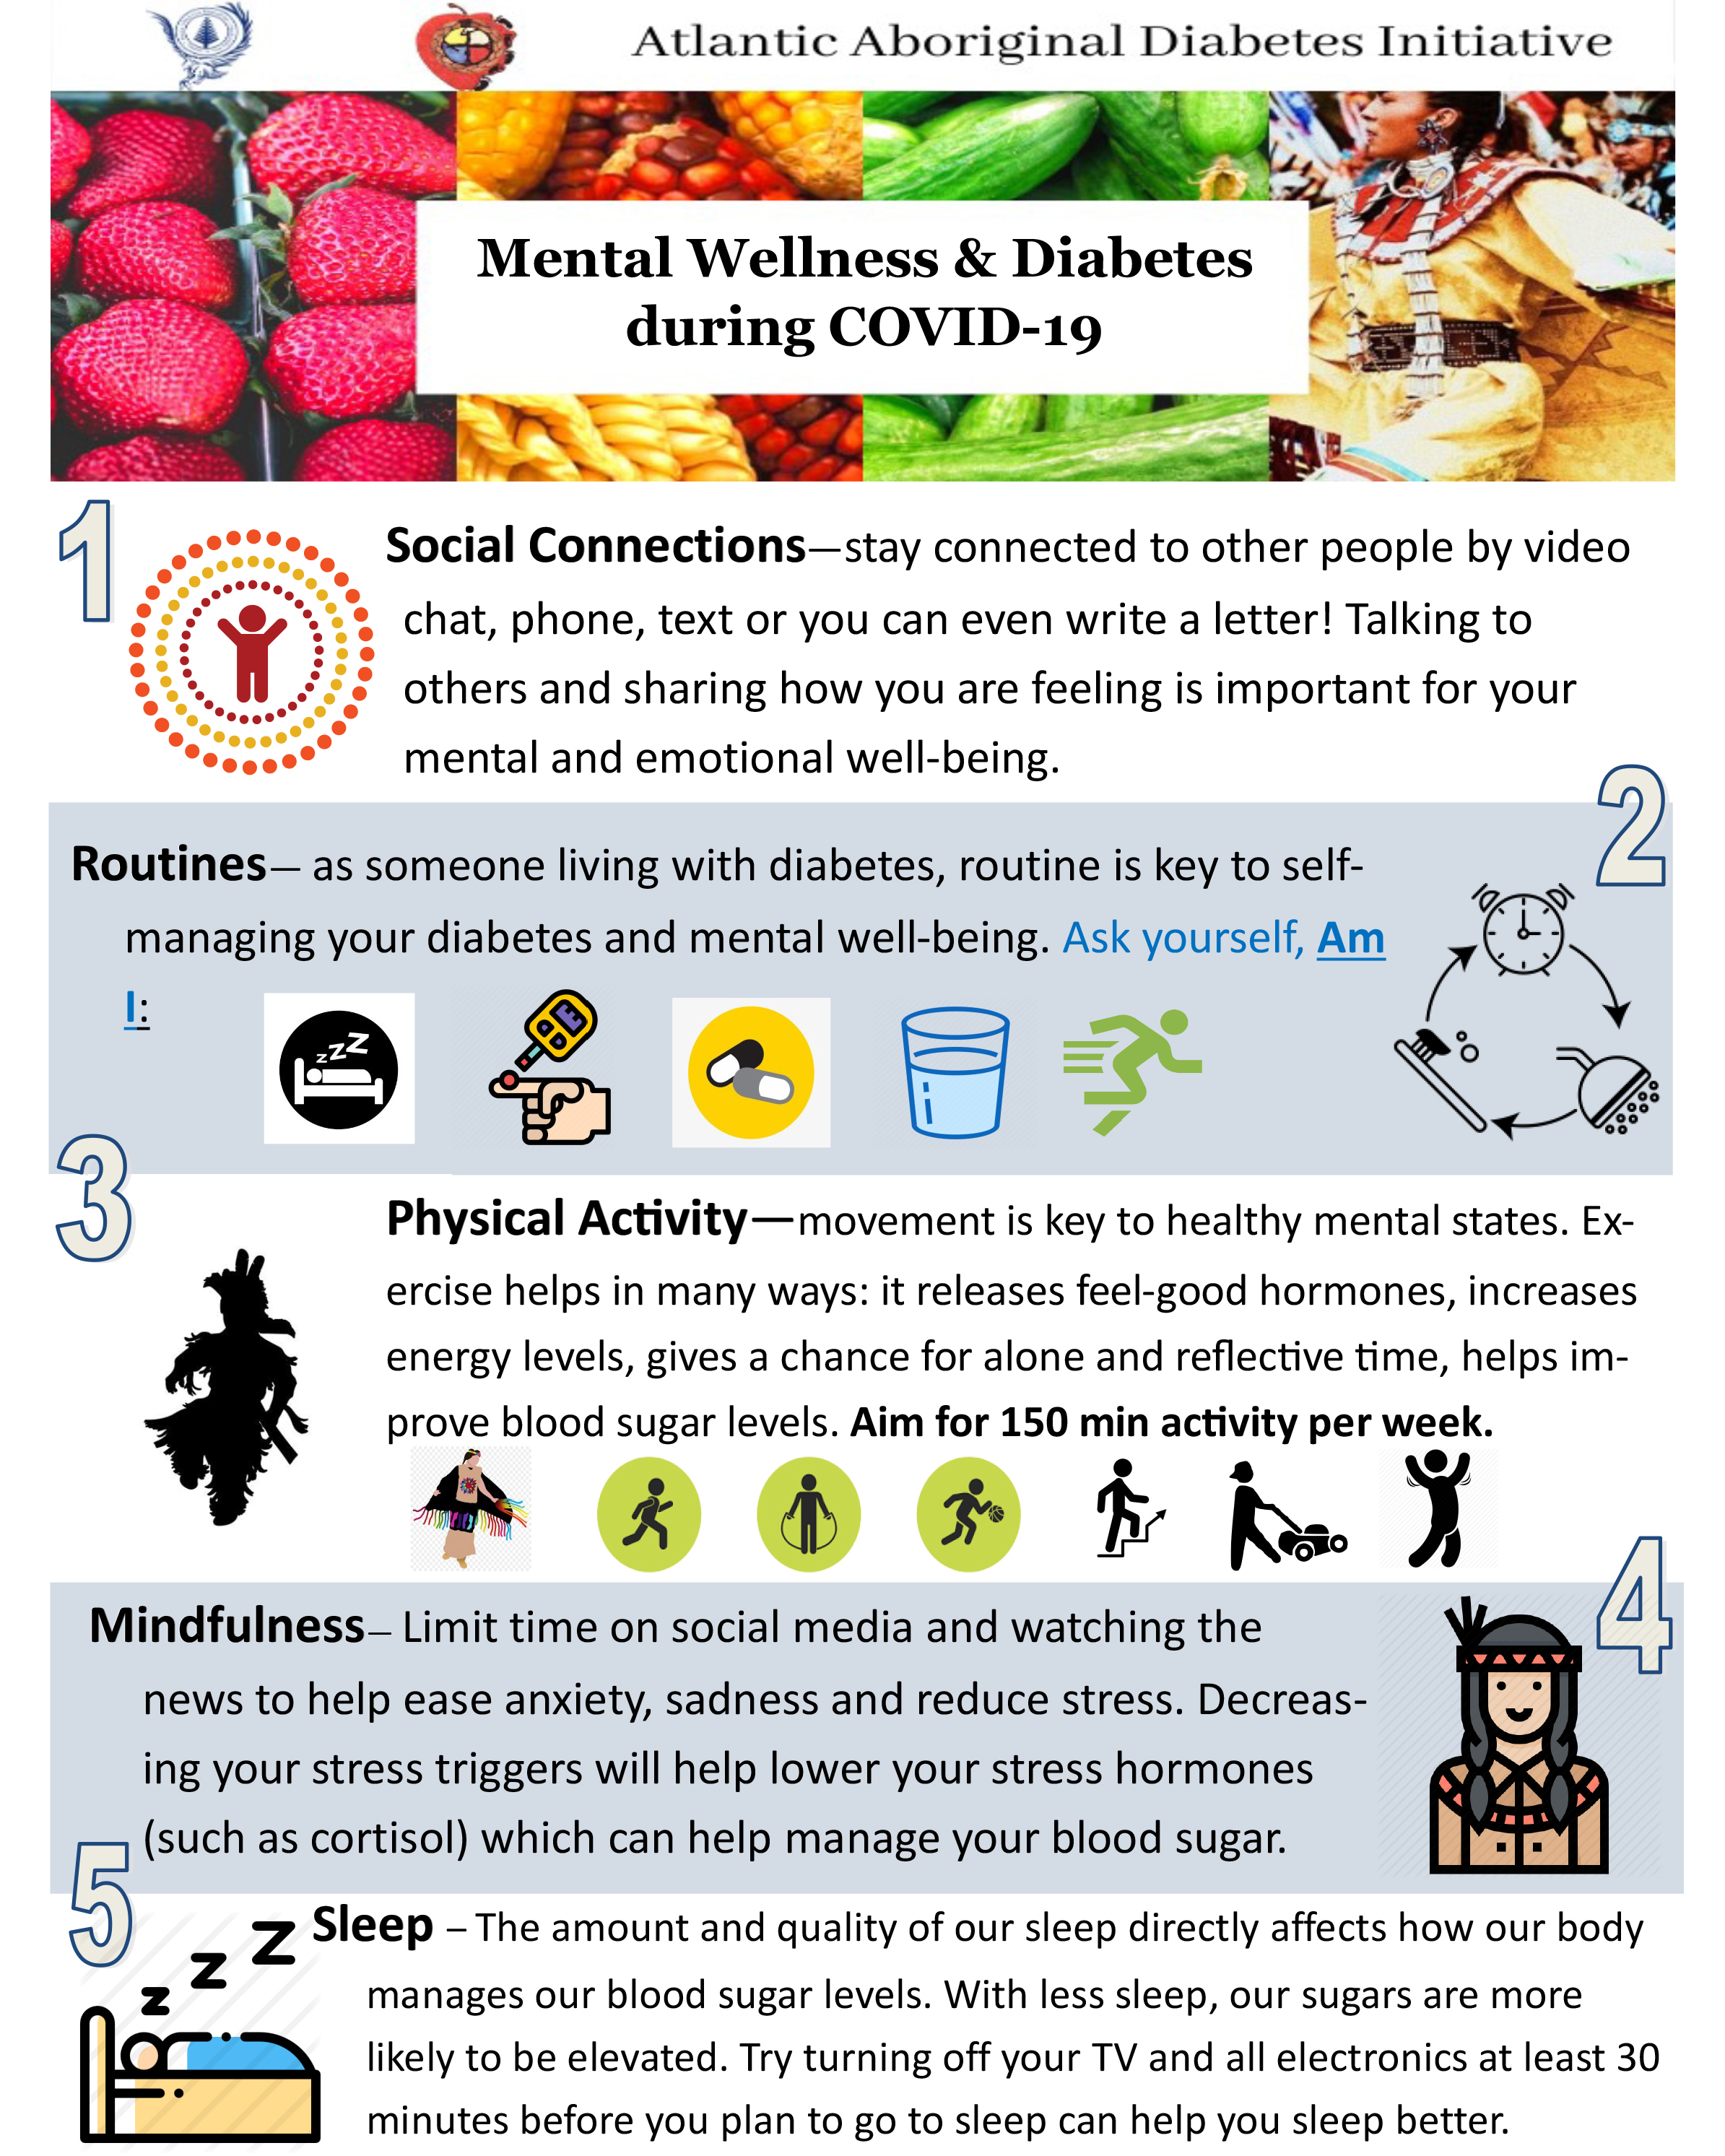 Mental Wellness & Diabetes during Covid-19